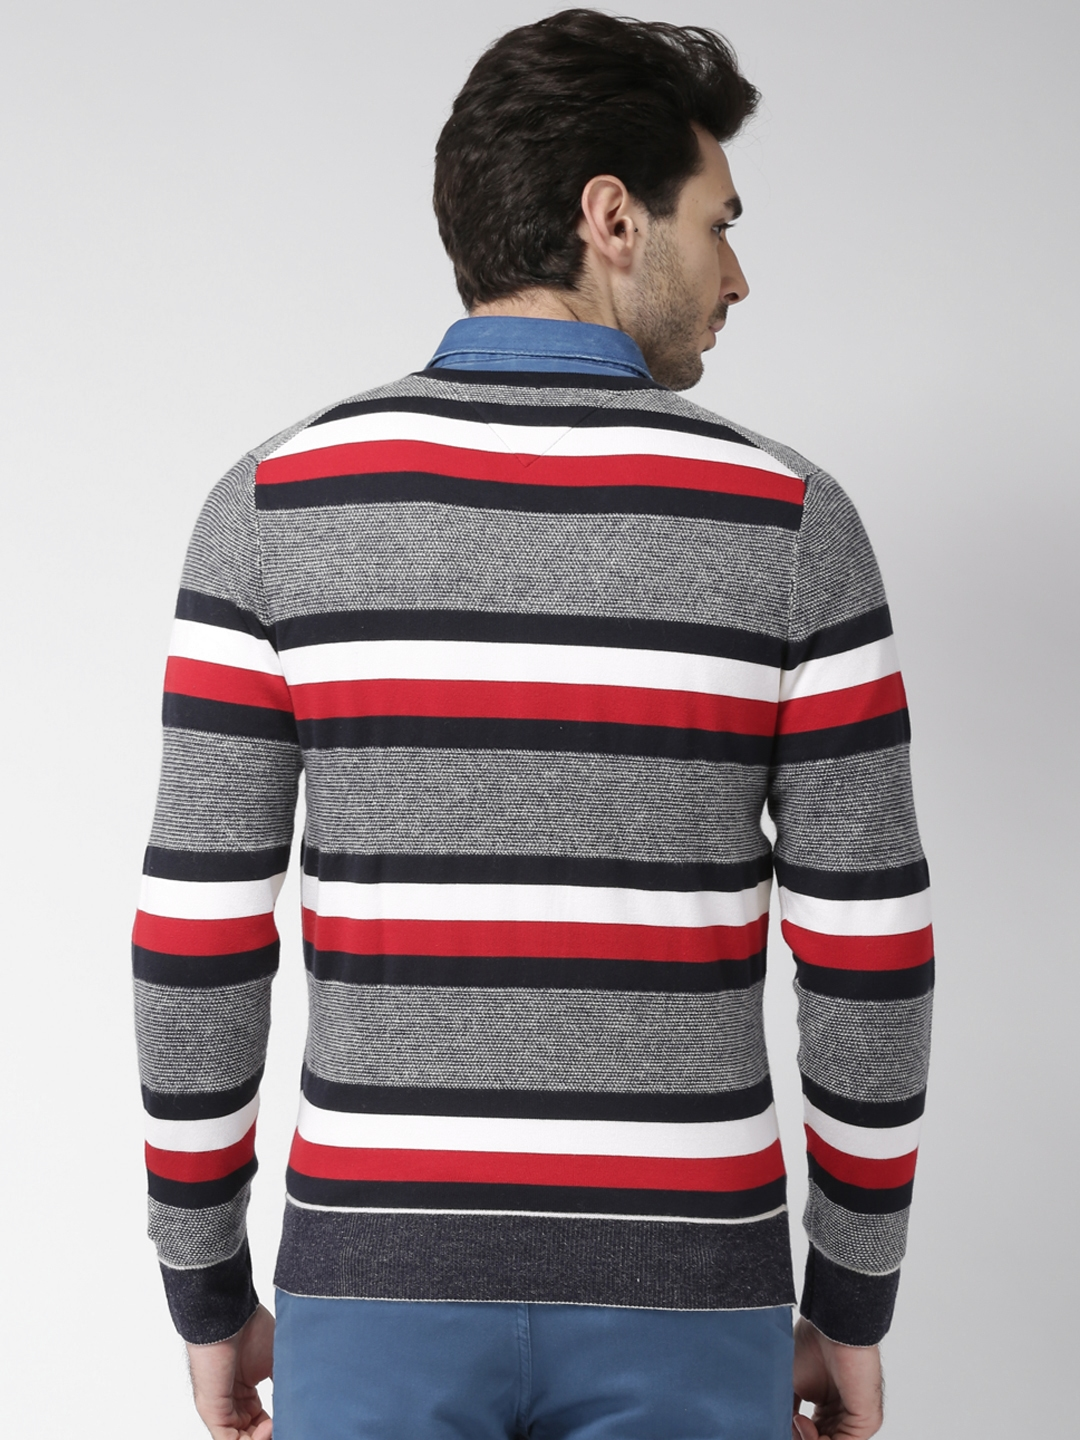 5b850a75 Buy Tommy Hilfiger Men Navy Blue & Red Striped Sweater - Sweaters ...